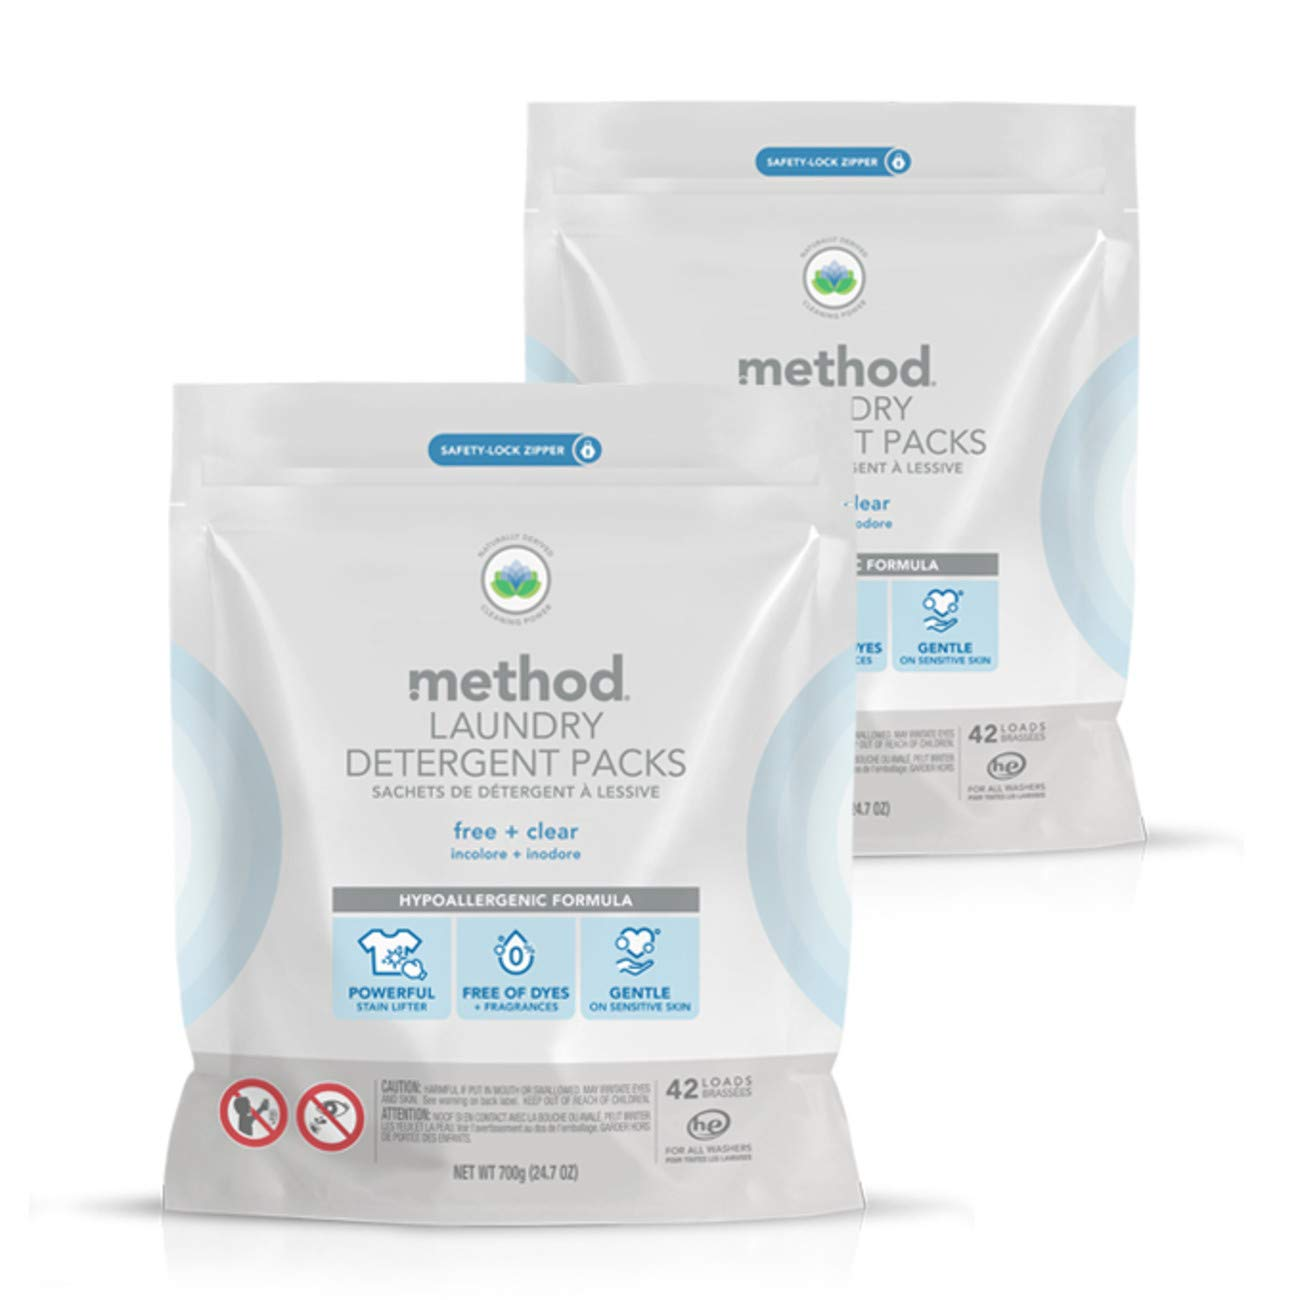 Method Laundry Detergent Packs, Free + Clear, 24.7 Ounce (Pack of 2)